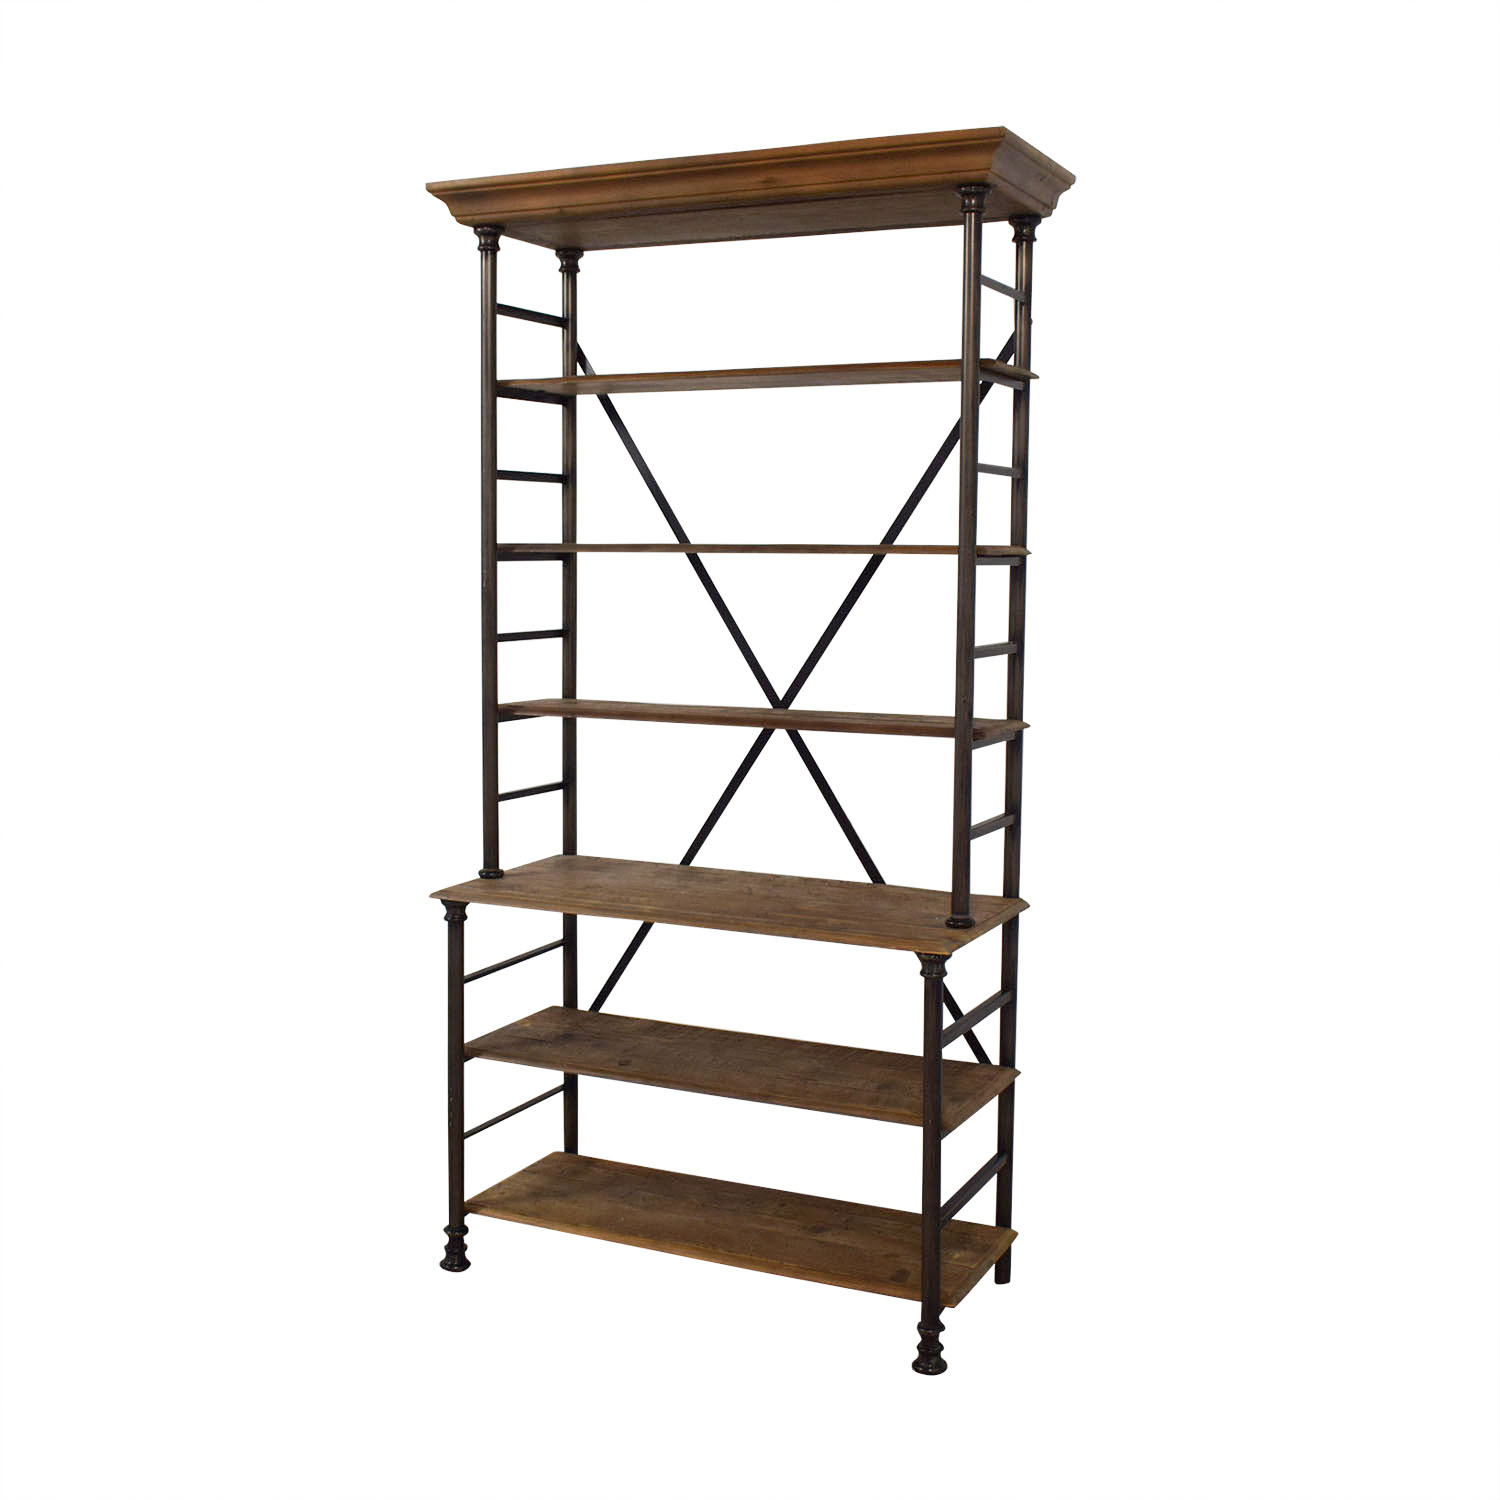 Tall Modern Shelving Unit coupon